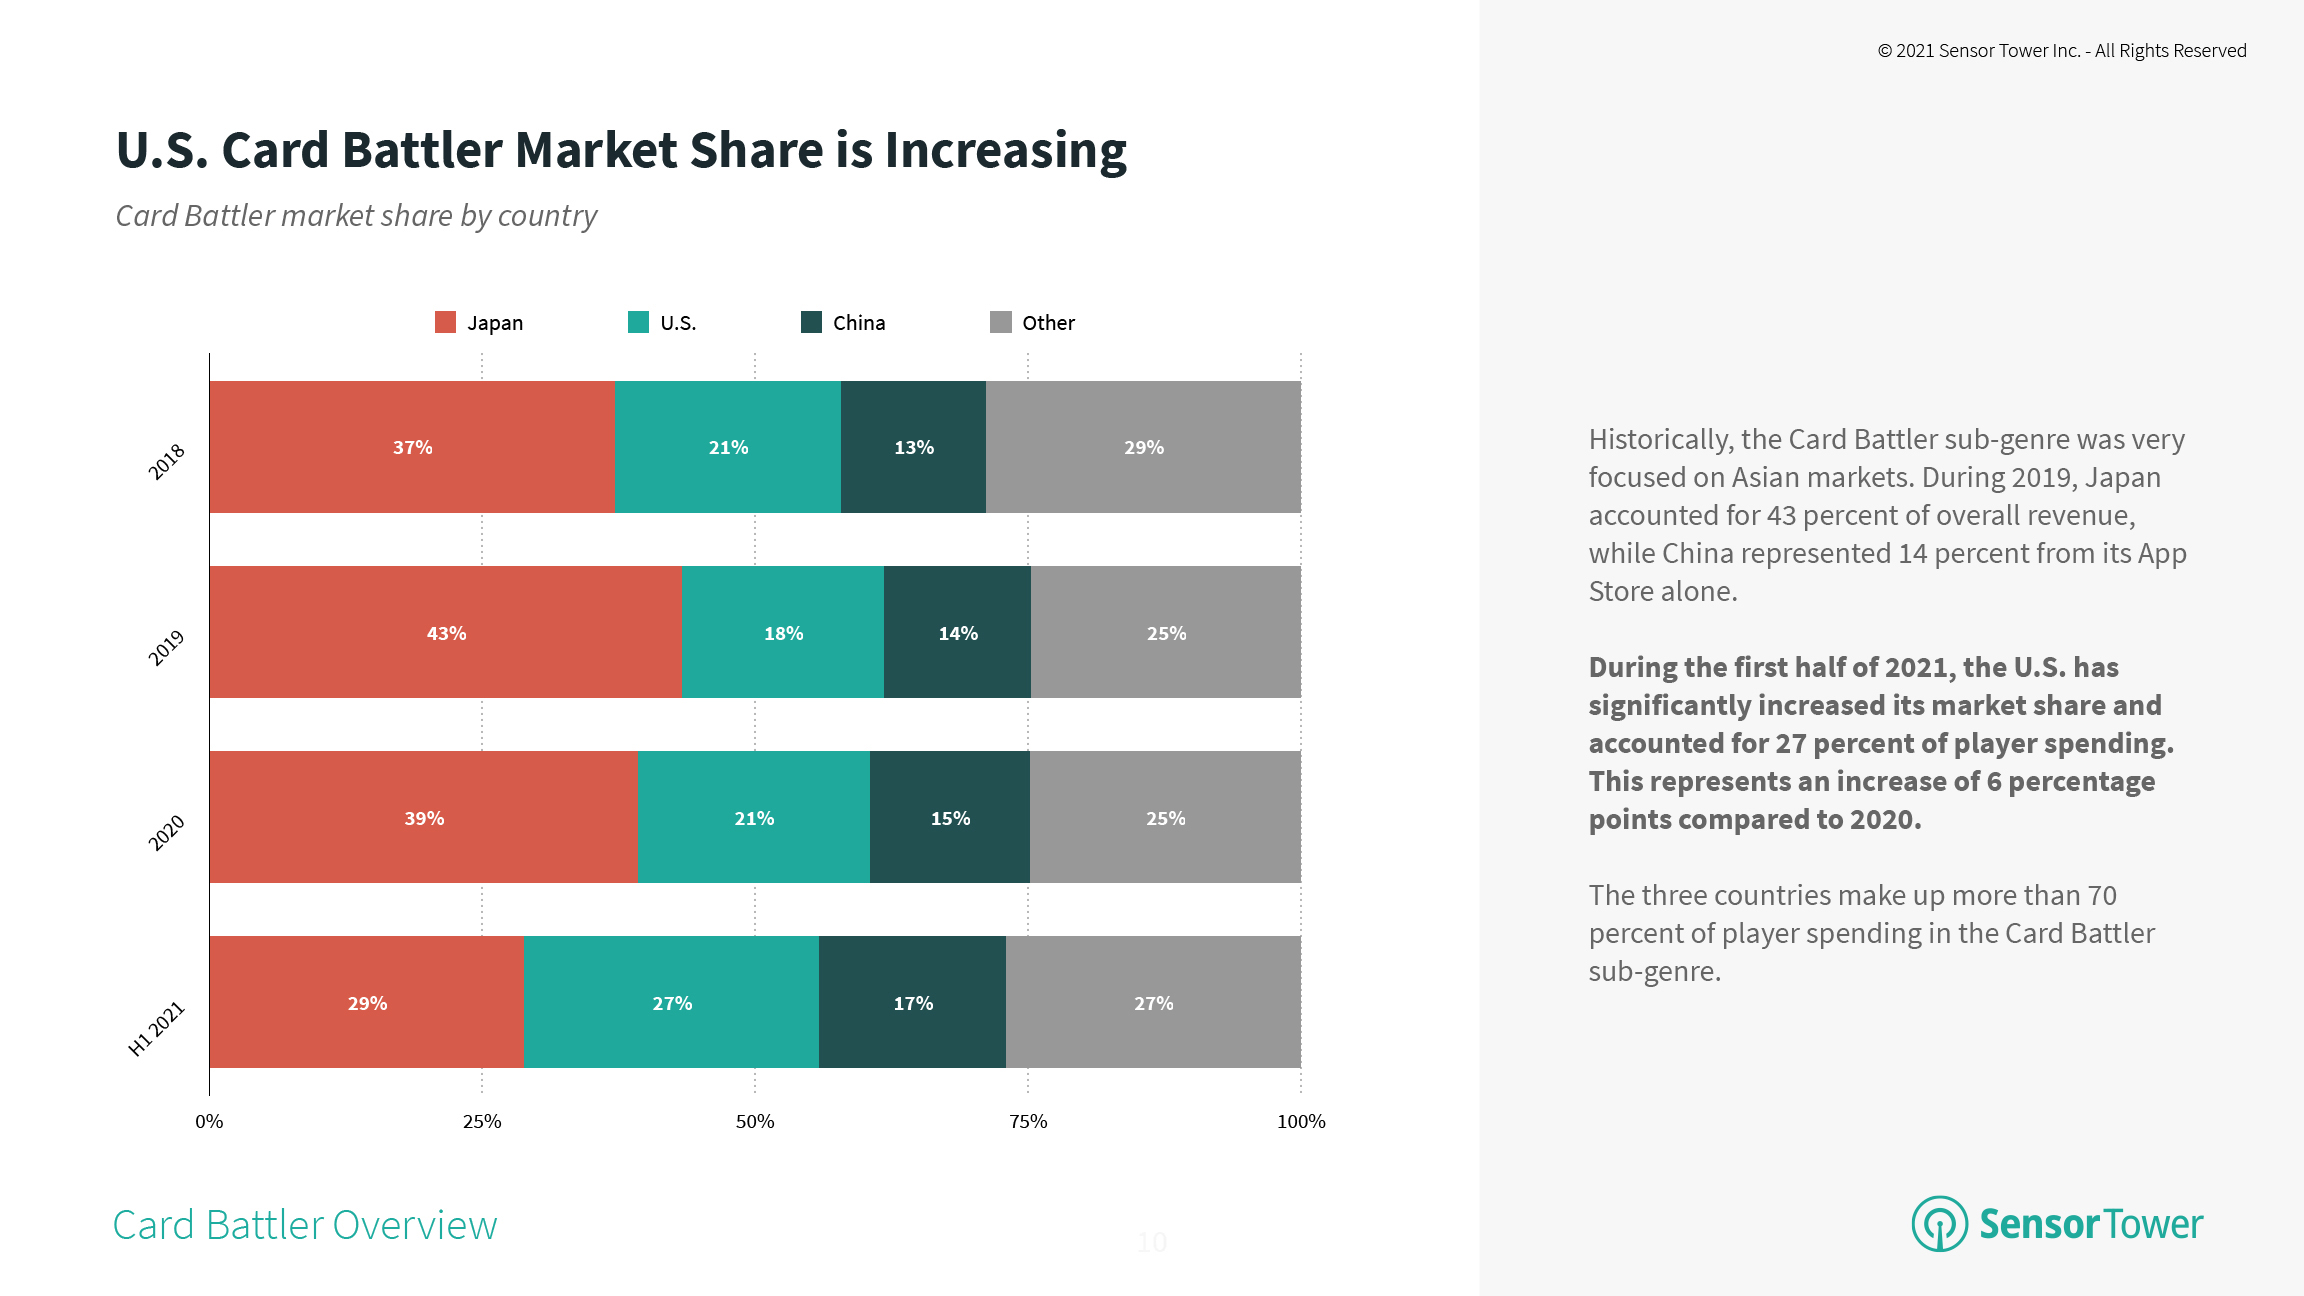 Card Battler Market Share by Country